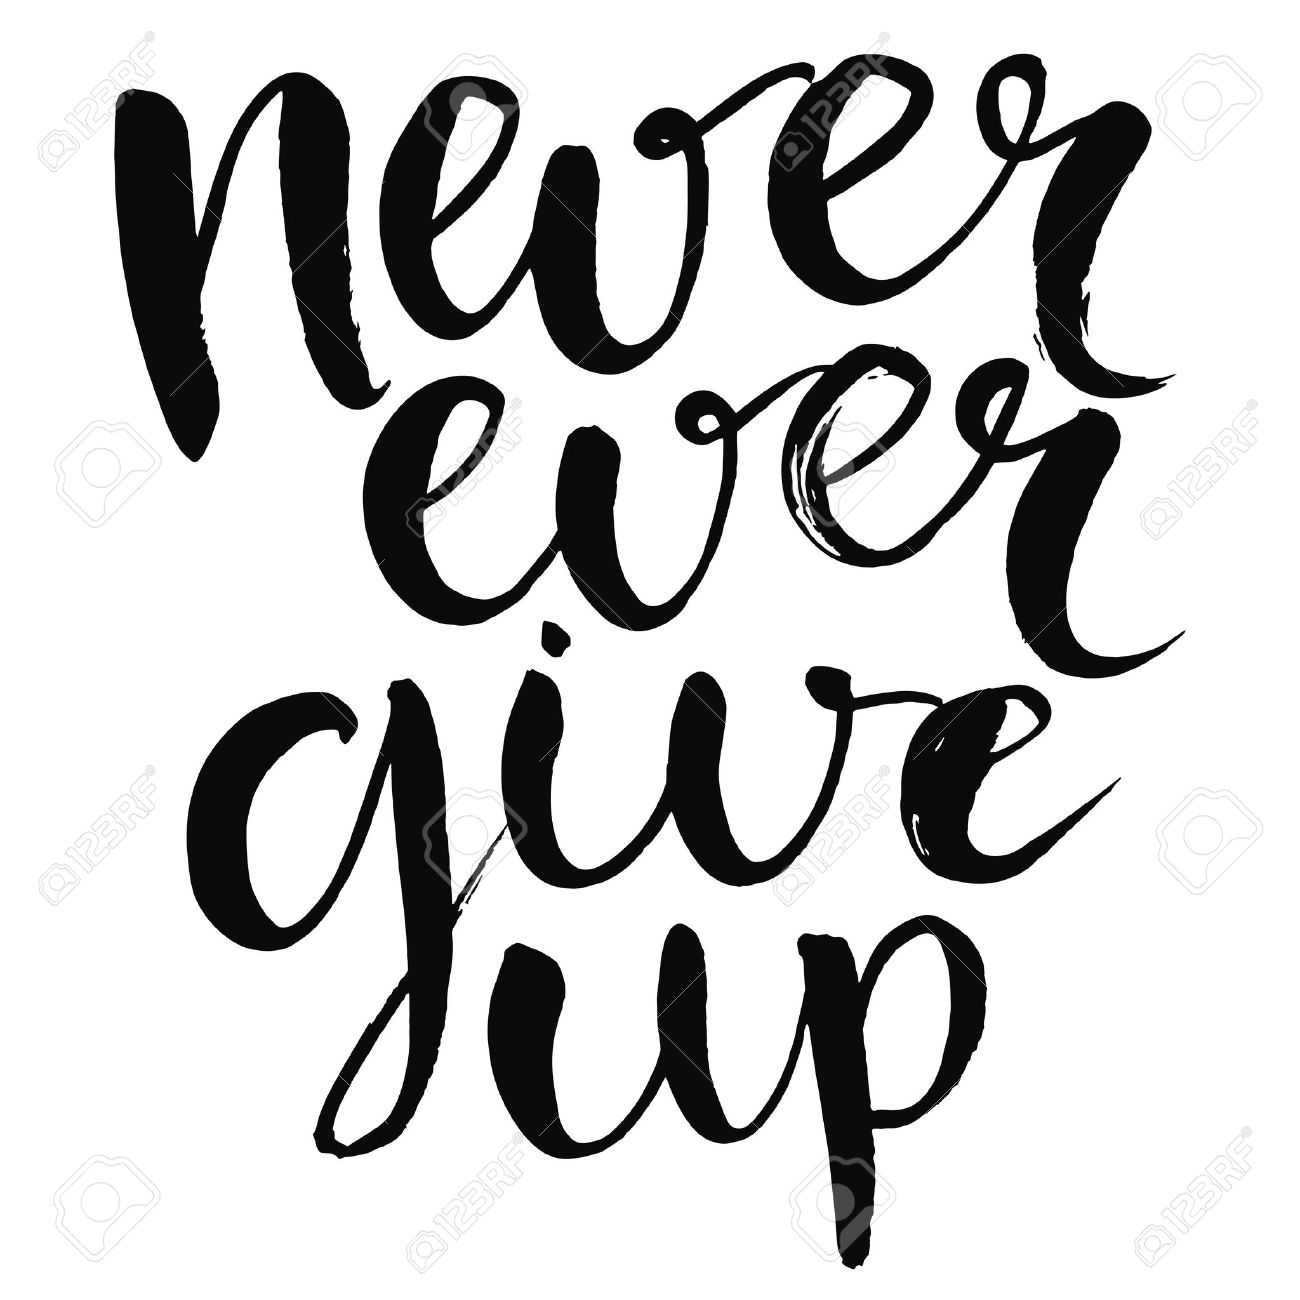 Never Ever Give Up   Motivational Quote, Typography Art With Brush Texture.  Black Vector